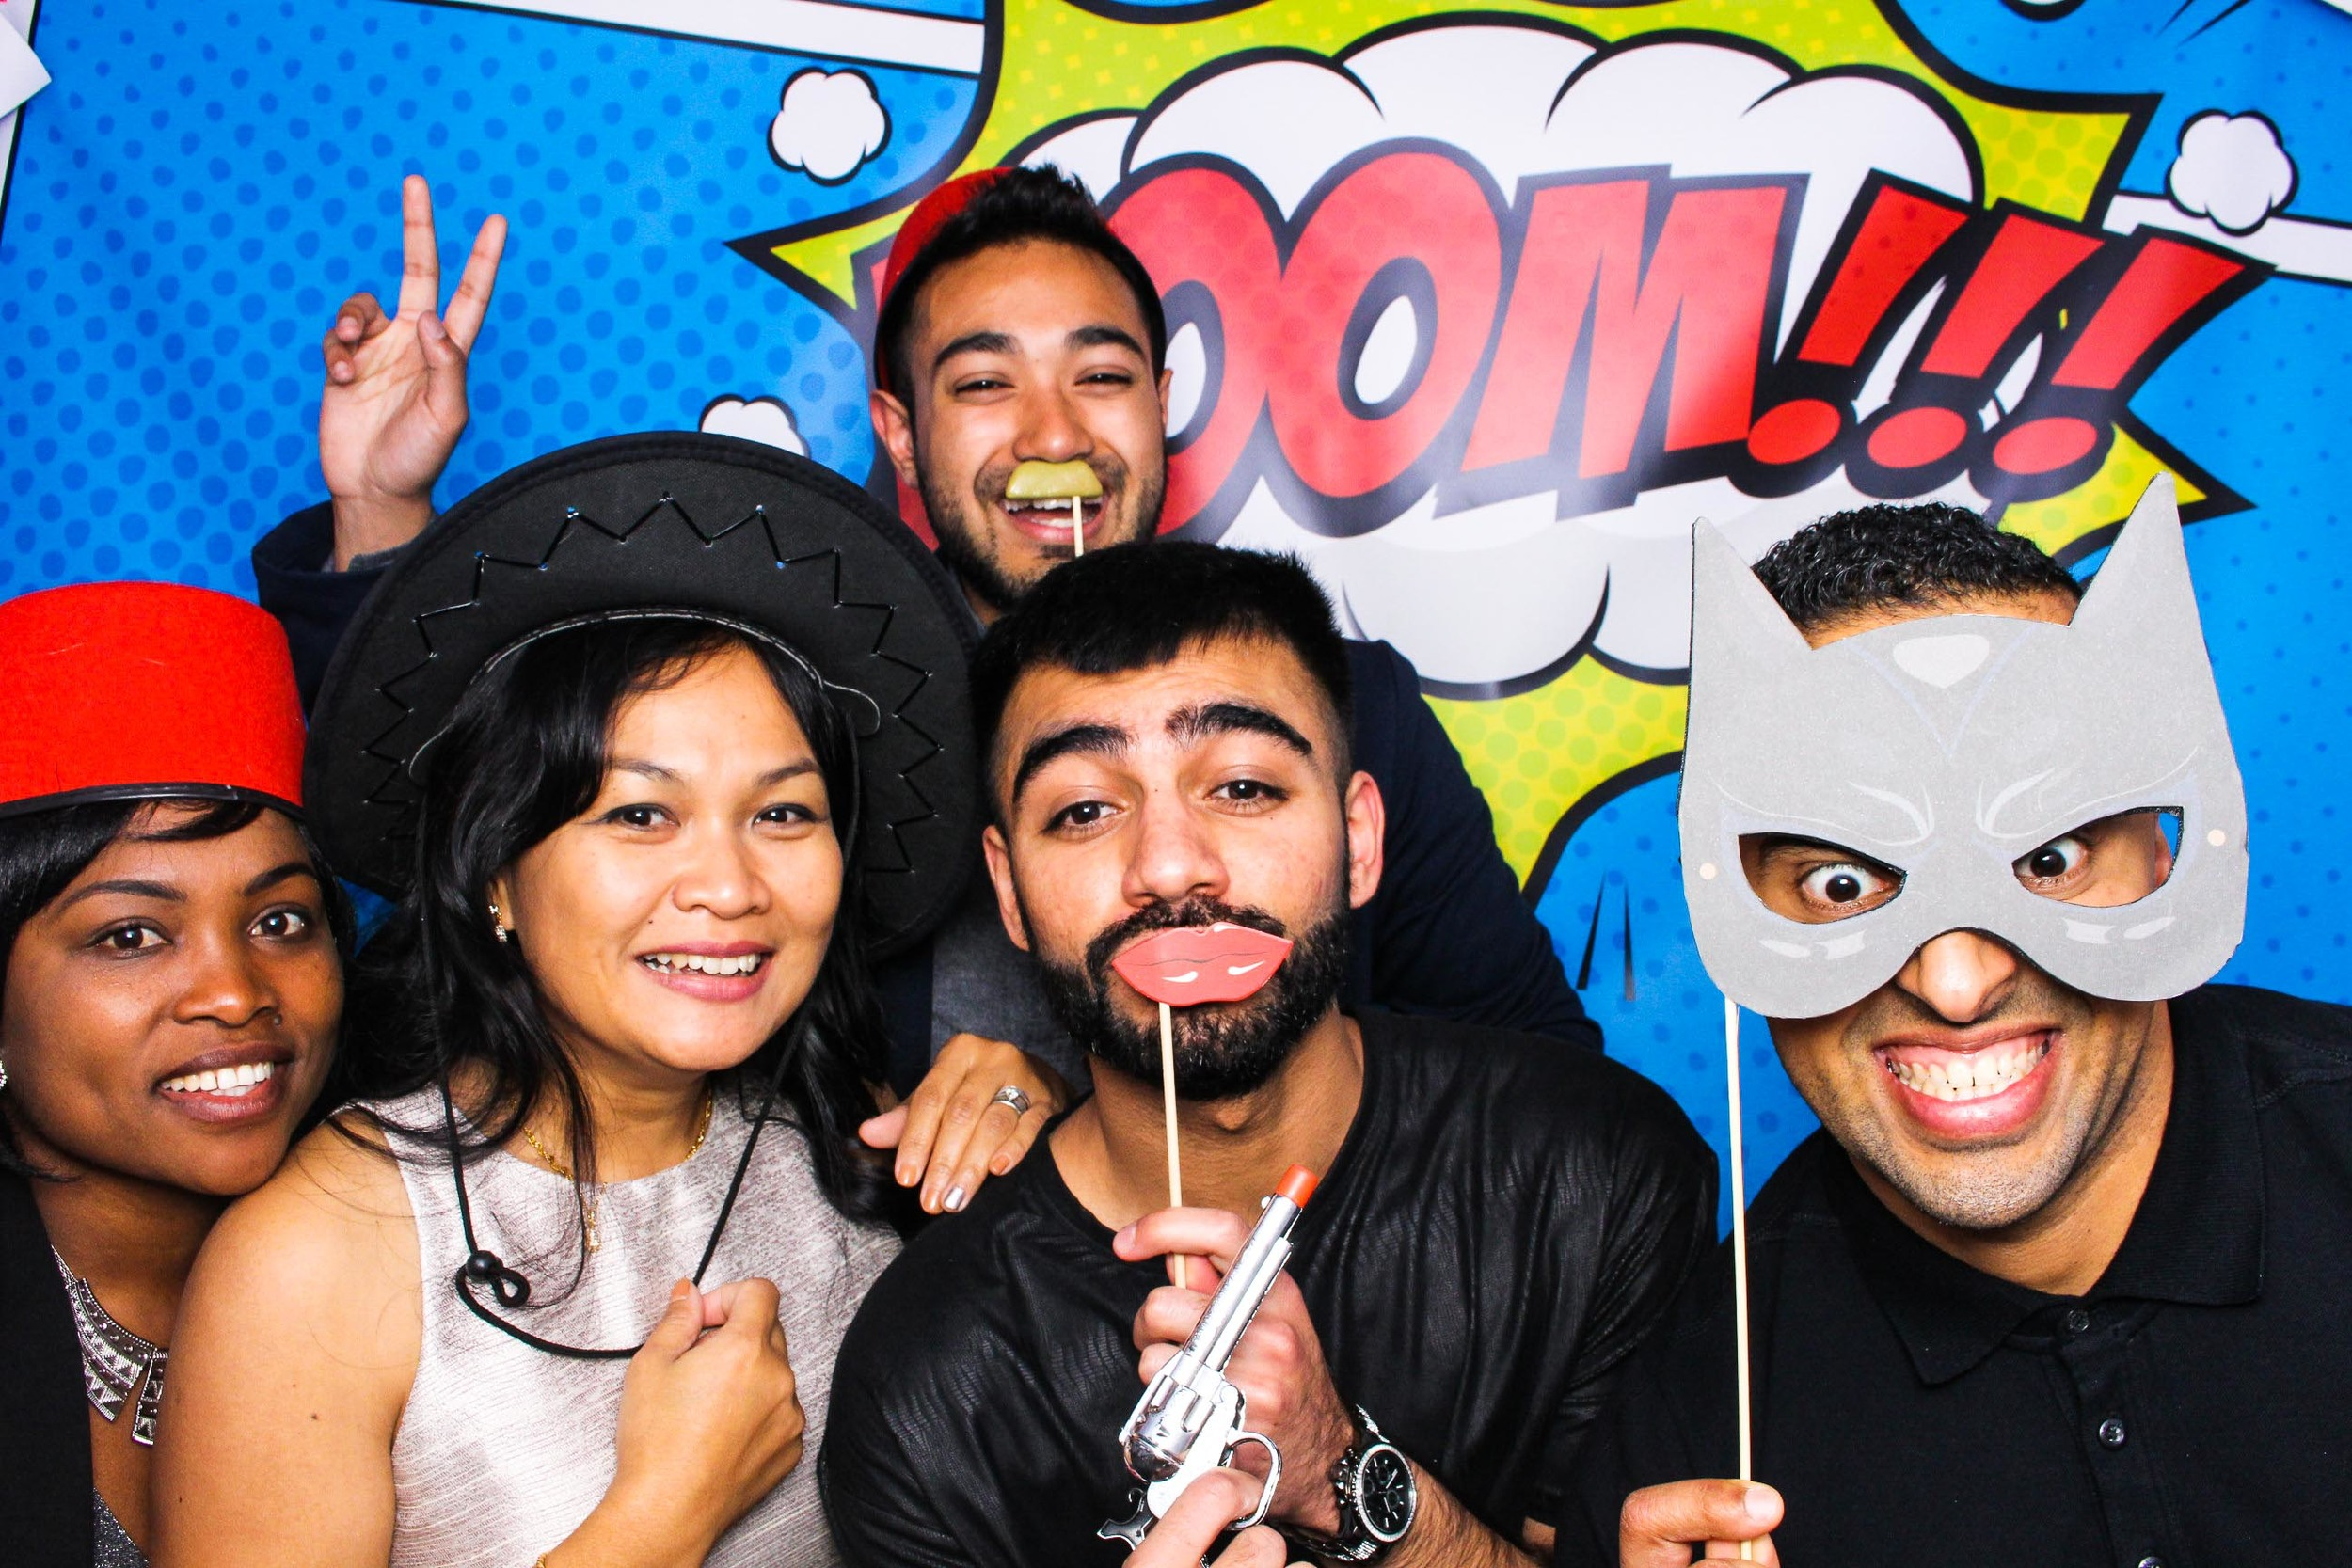 Fotoauto Photo Booth Hire - Shop Direct-209.jpg